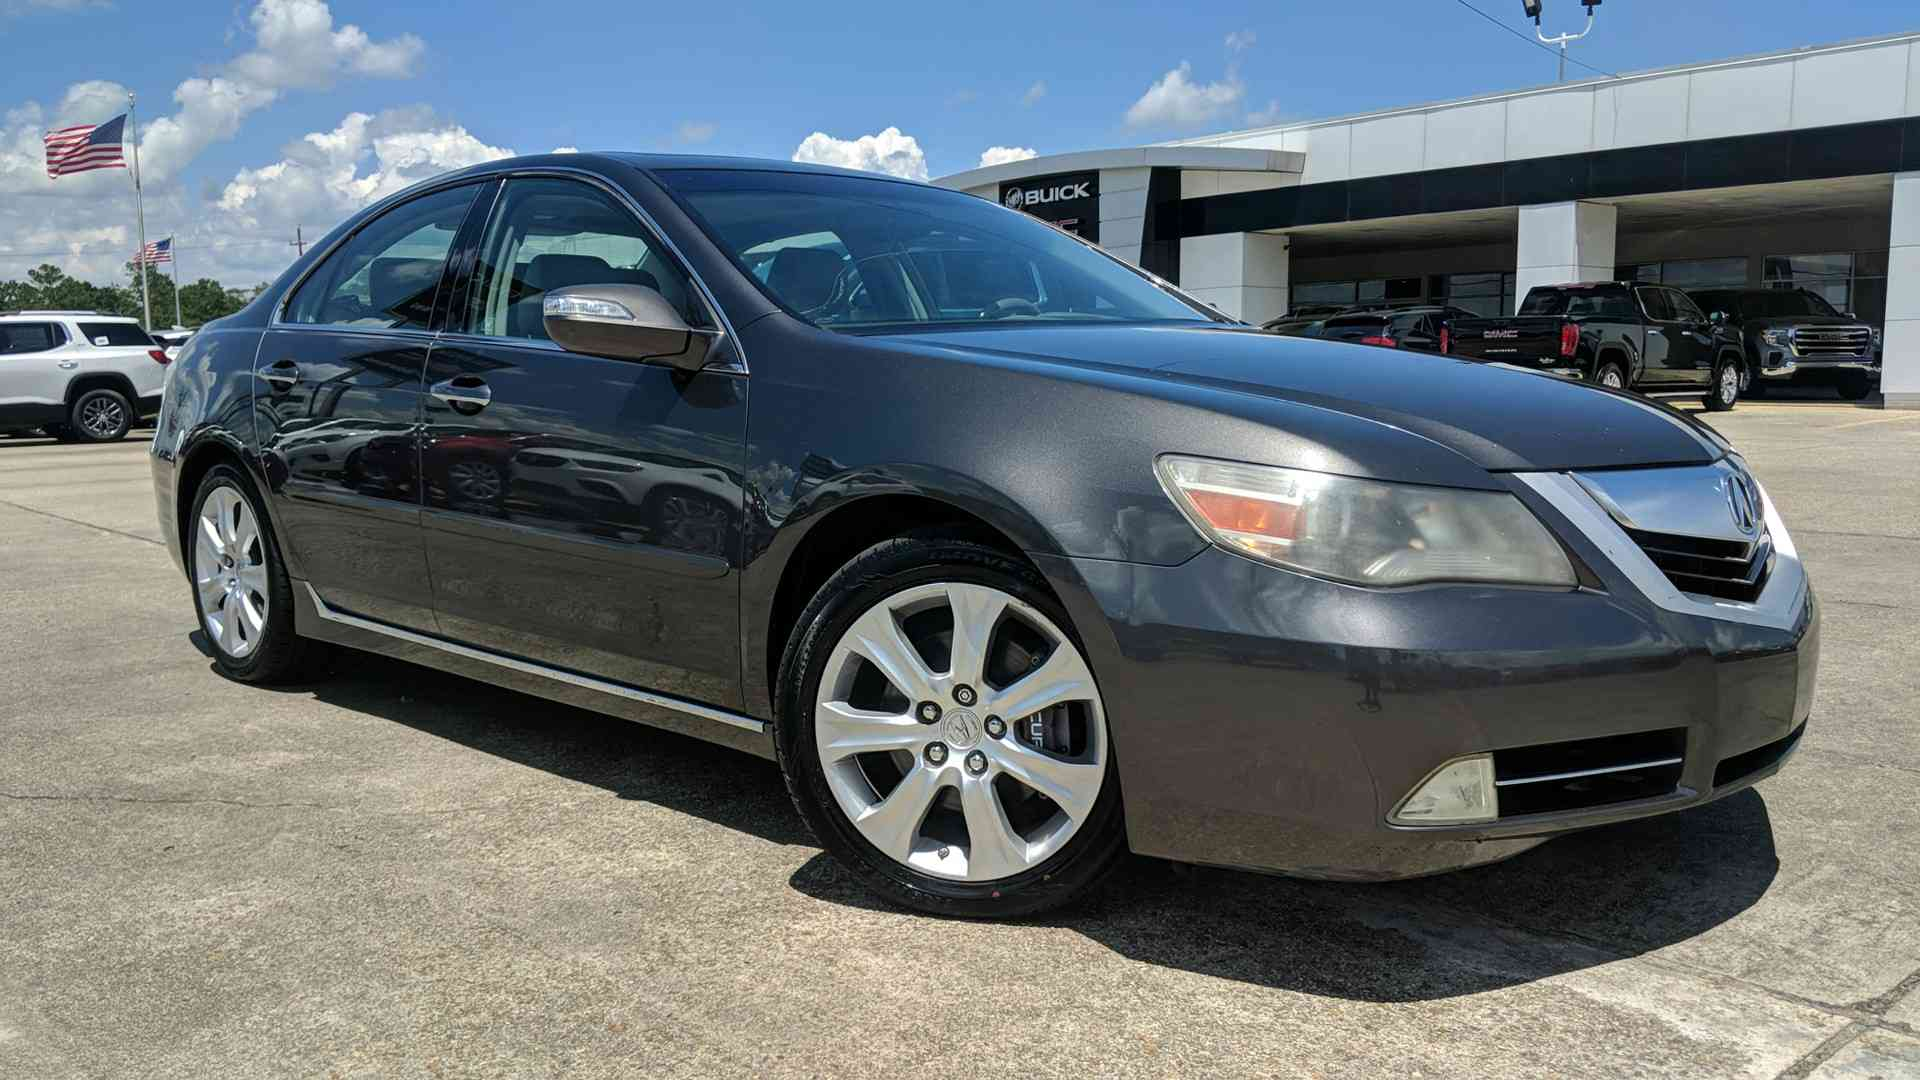 Acura Rl For Sale >> 2010 Acura Rl For Sale In Gonzales Used Car For Sale At Ross Downing Buick Gmc Of Gonzales